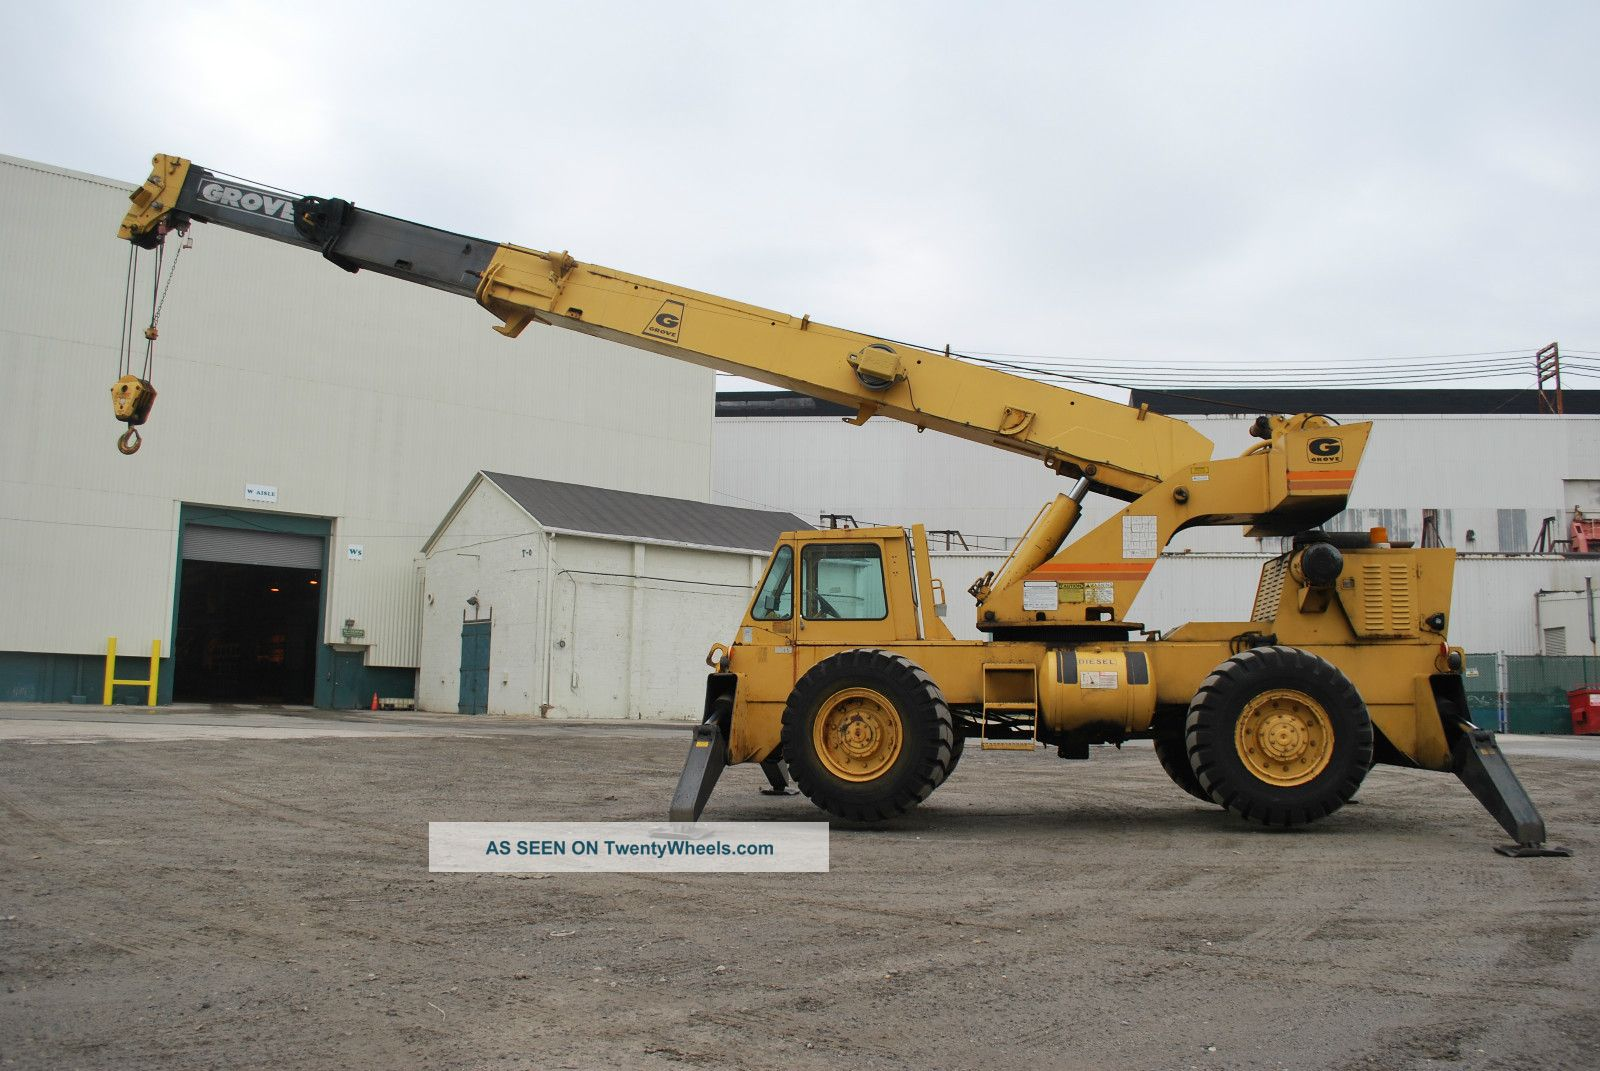 Grove 18 Ton Crane Rough Terrian 60 ' Boom Rt58b Lift - We Can Deliver Cranes photo